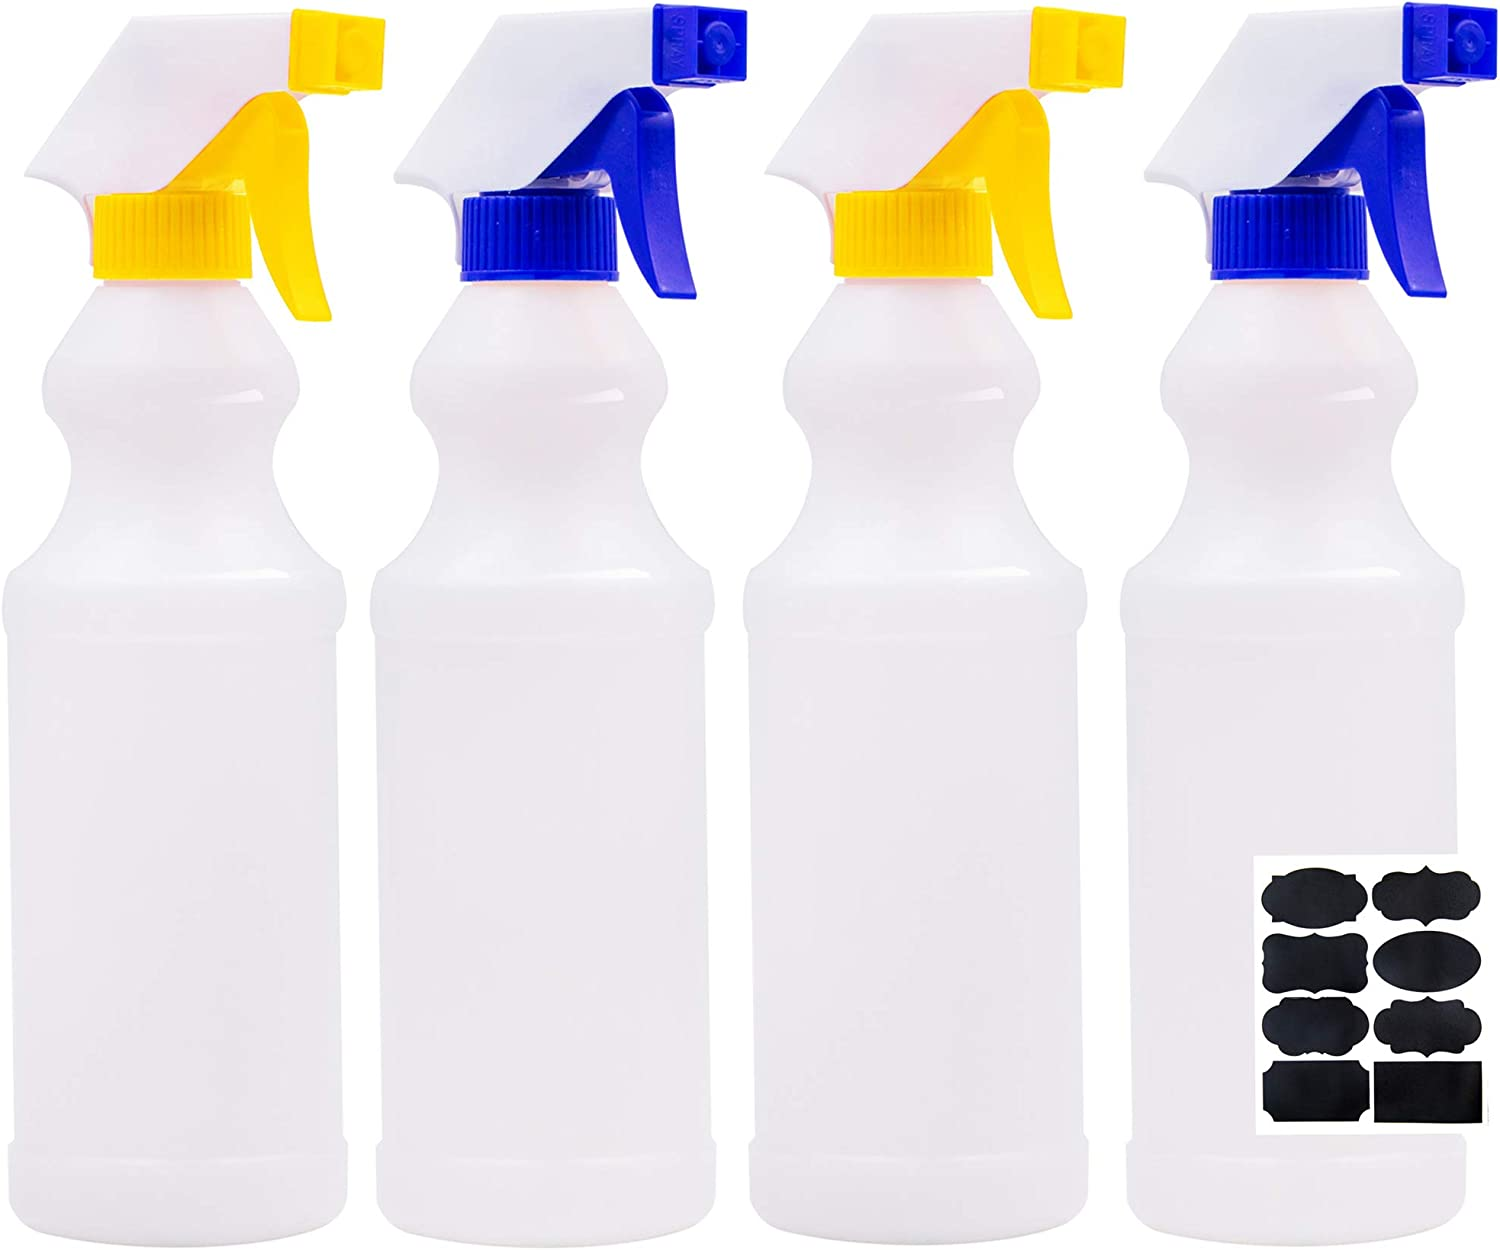 Youngever Plastic List price Spray Bottles Leak Sale special price Proof 16 Spra Pack 4 Ounce